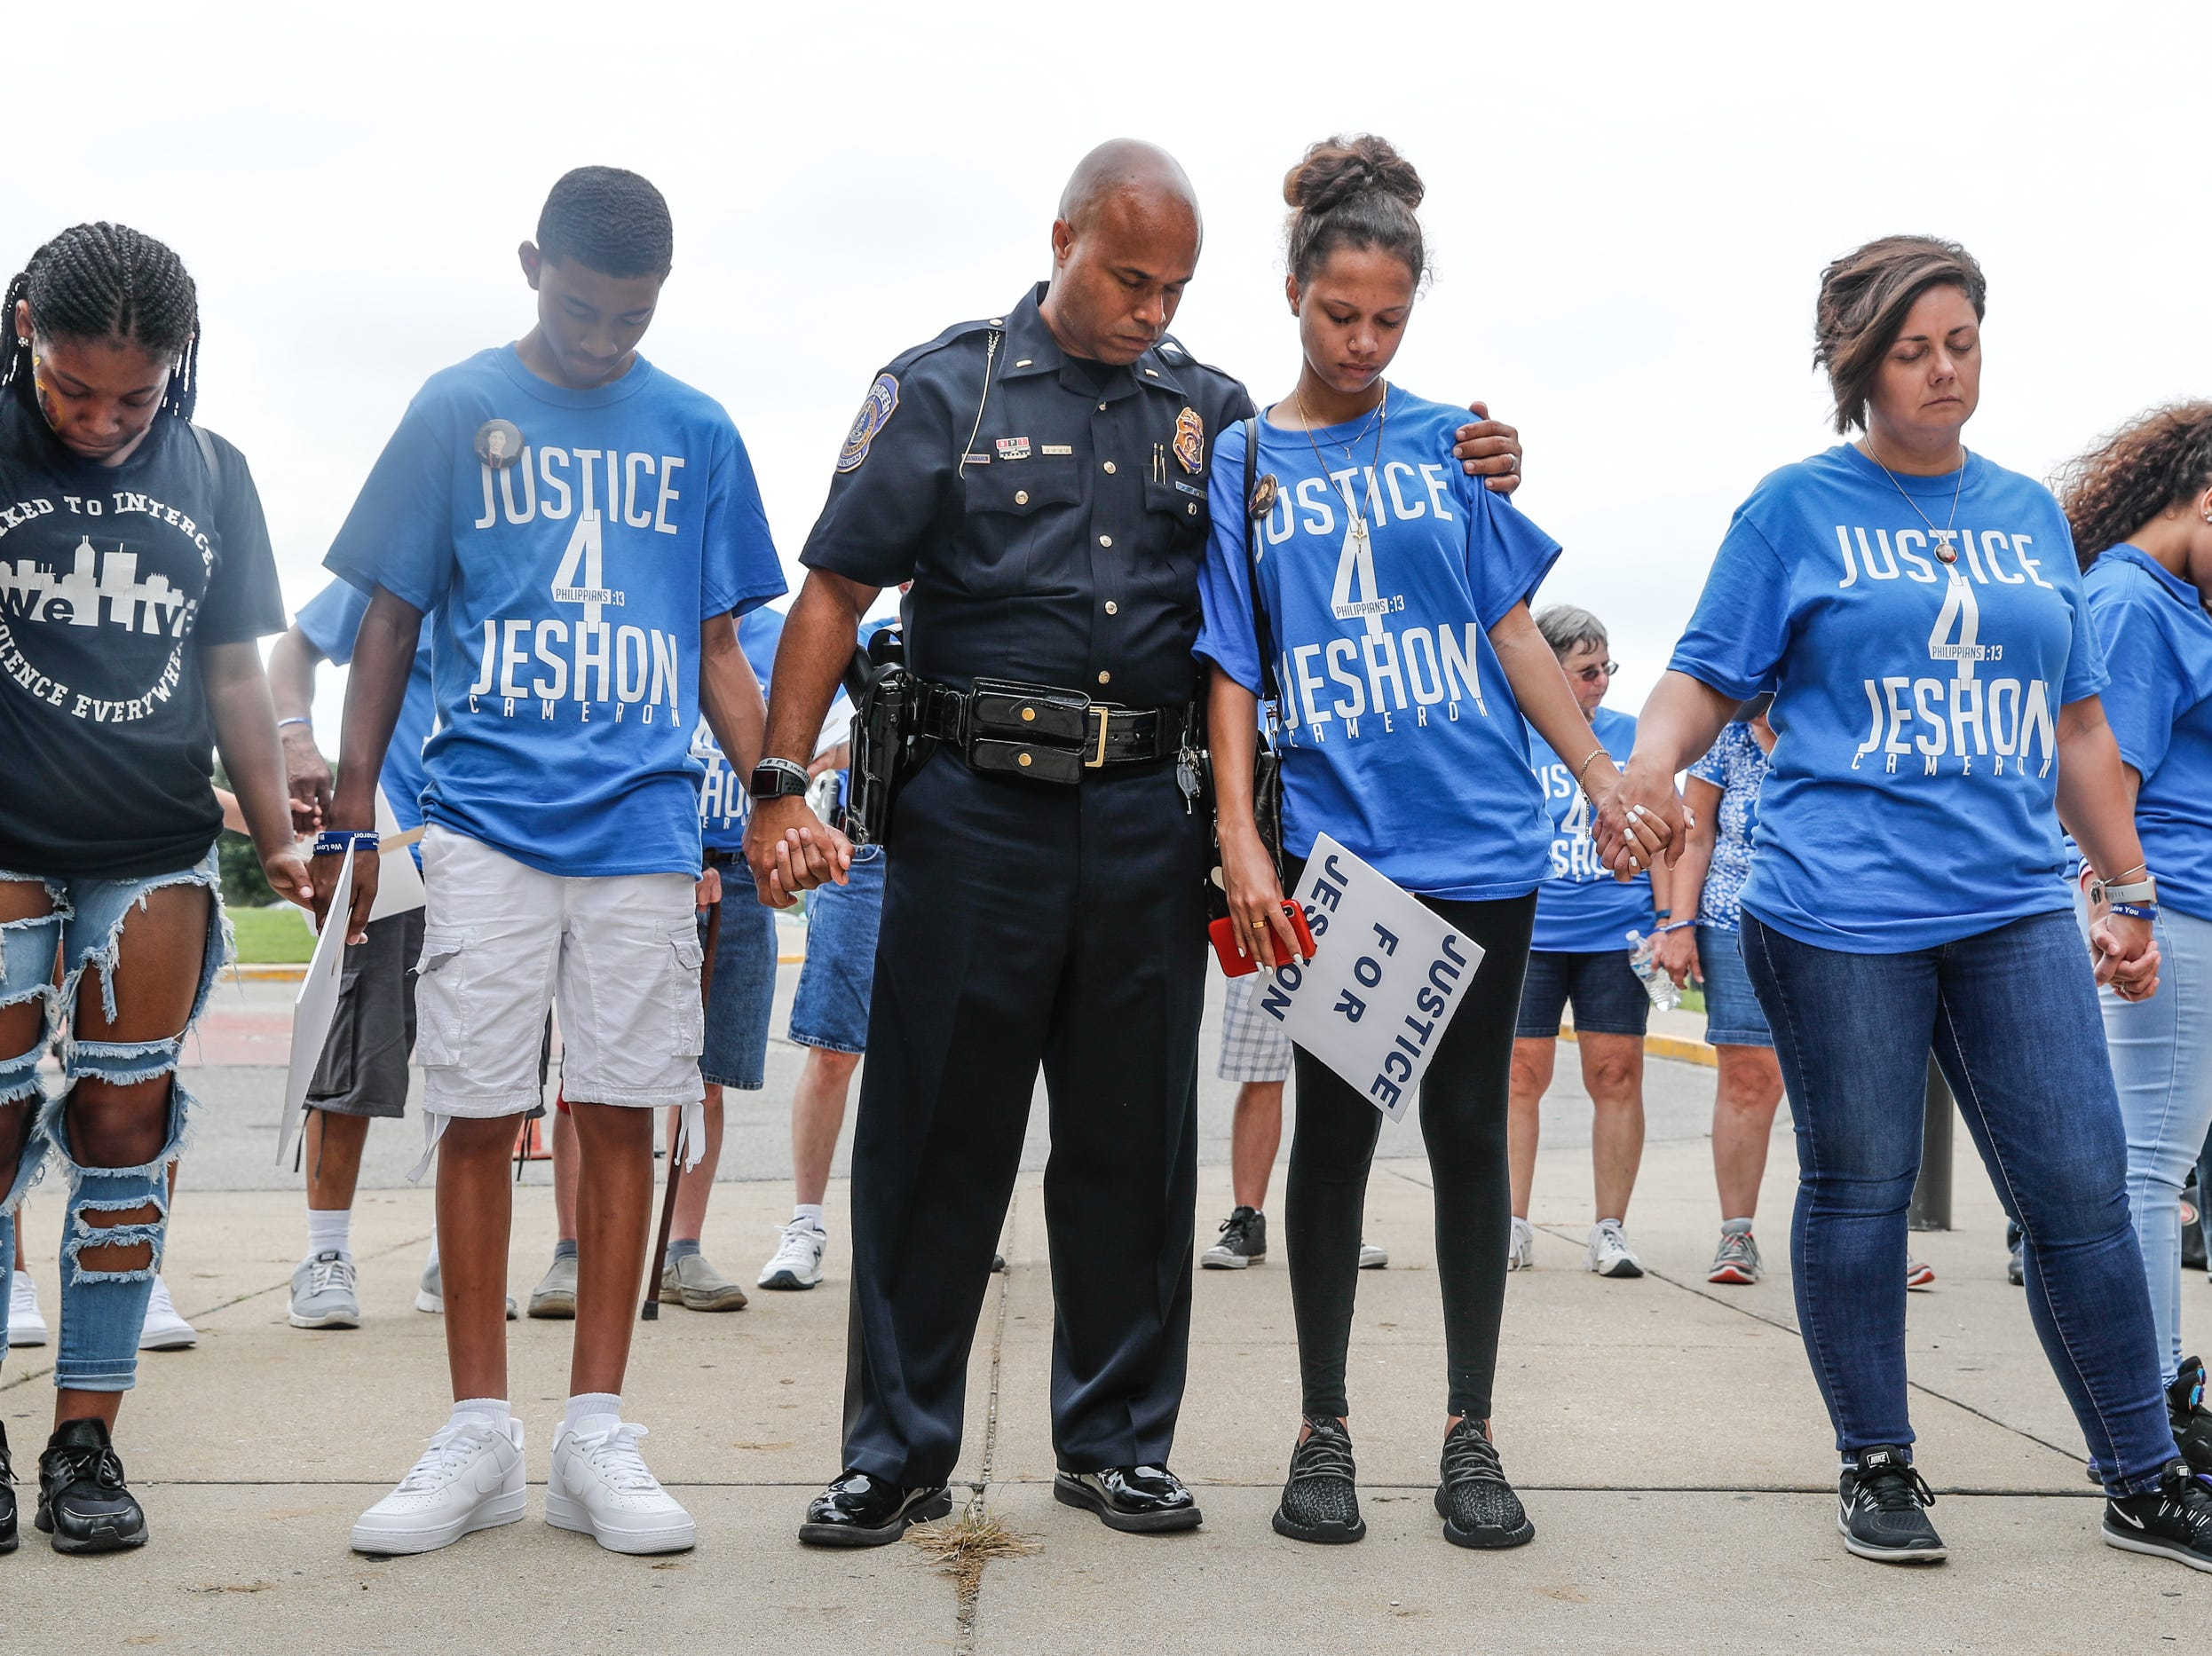 IMPD Public Information Officer, Kendale Adams comforts Divina Leal, who lost her boyfriend JeShon Cameron and her mother Josie Jones to gun violence, during the 'We Live' second annual Peace Walk and community day to end youth violence at Washington Park on Saturday, Aug. 11, 2018. 'We Live,' which stands for 'Linked To Intercept Violence' was started by students from Warren Central High School in Indianapolis.